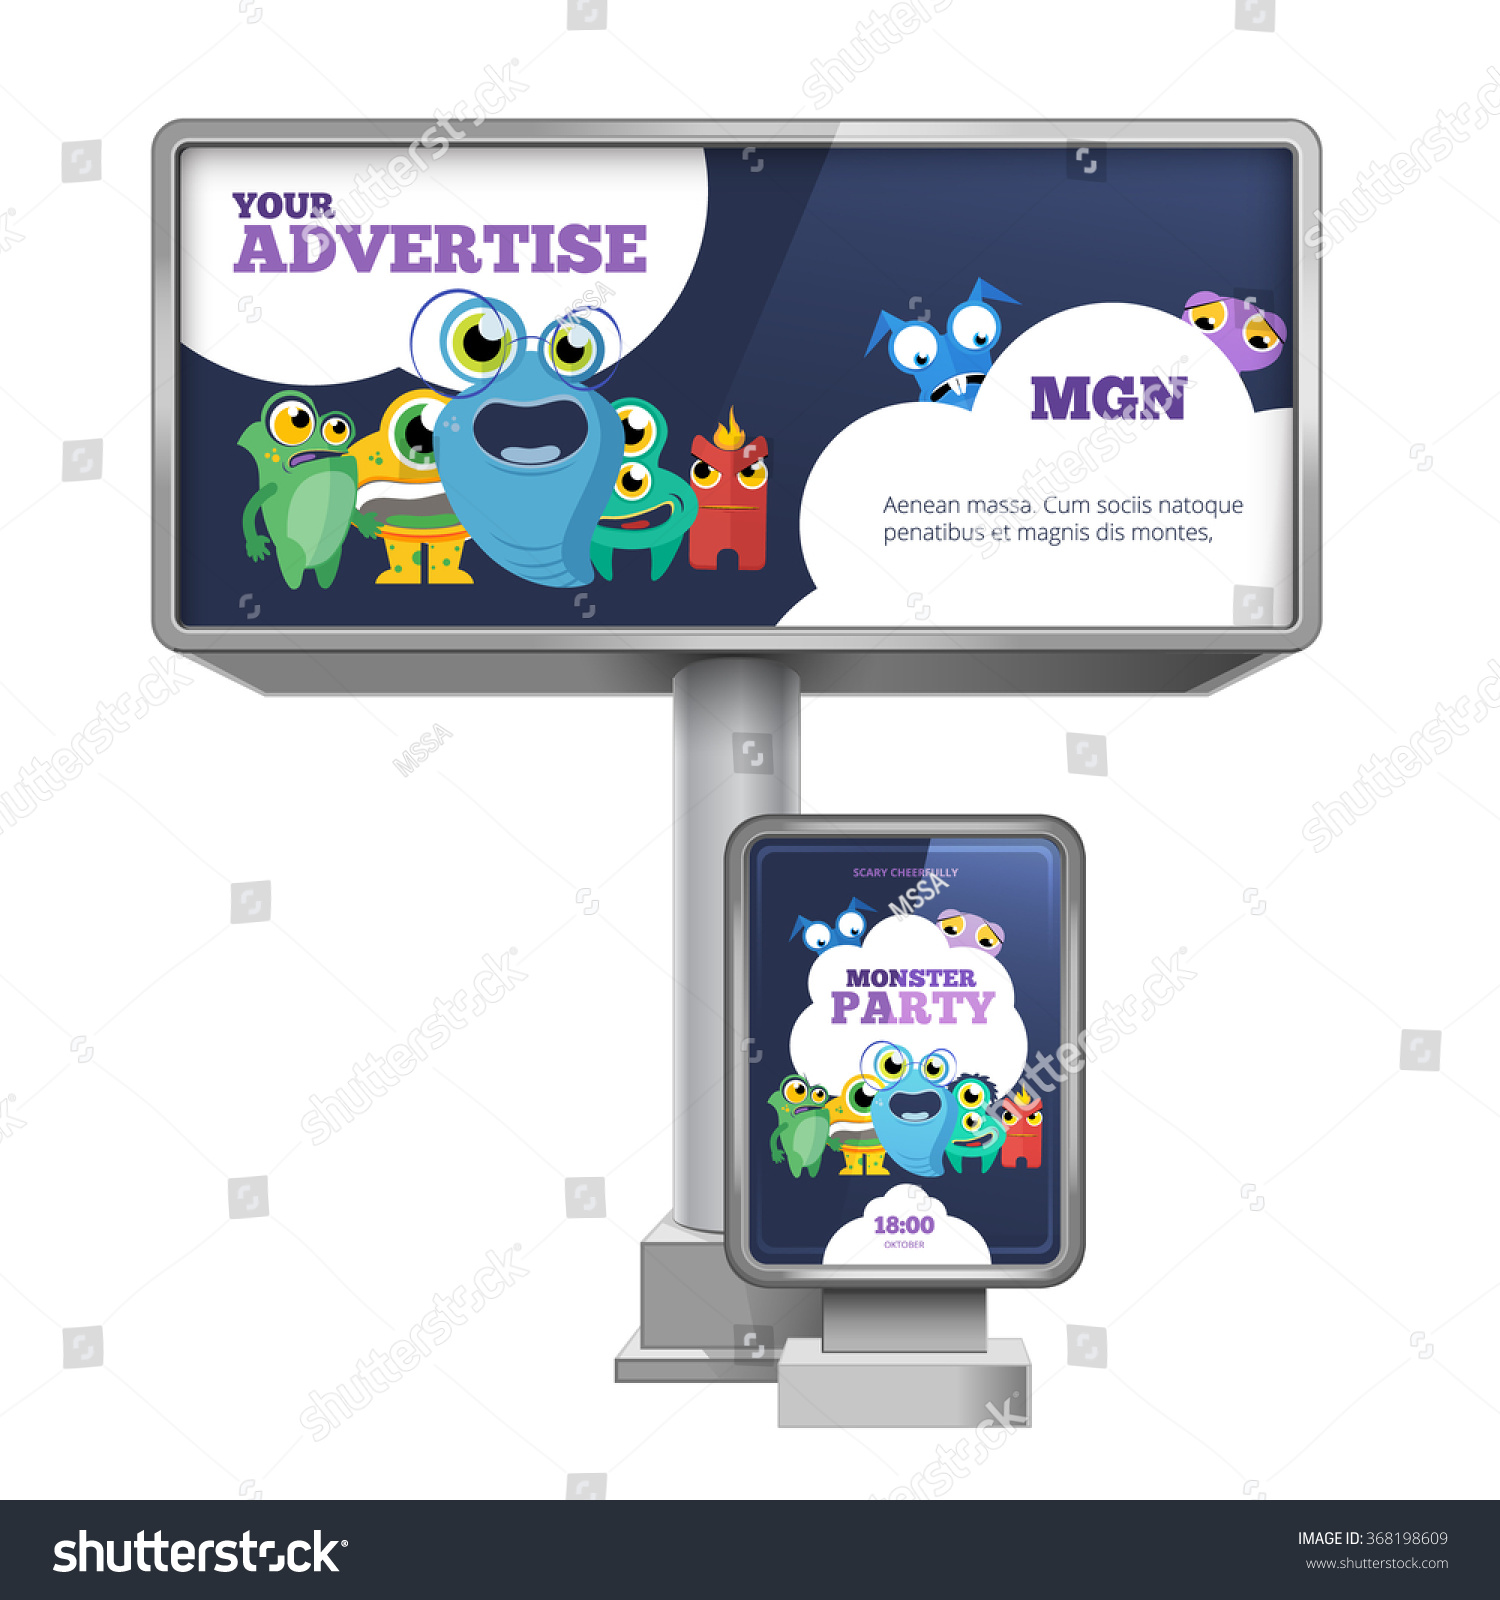 outdoor advertising billboard citylight template design stock outdoor advertising billboard and citylight template design advertisement stationery commercial marketing vector